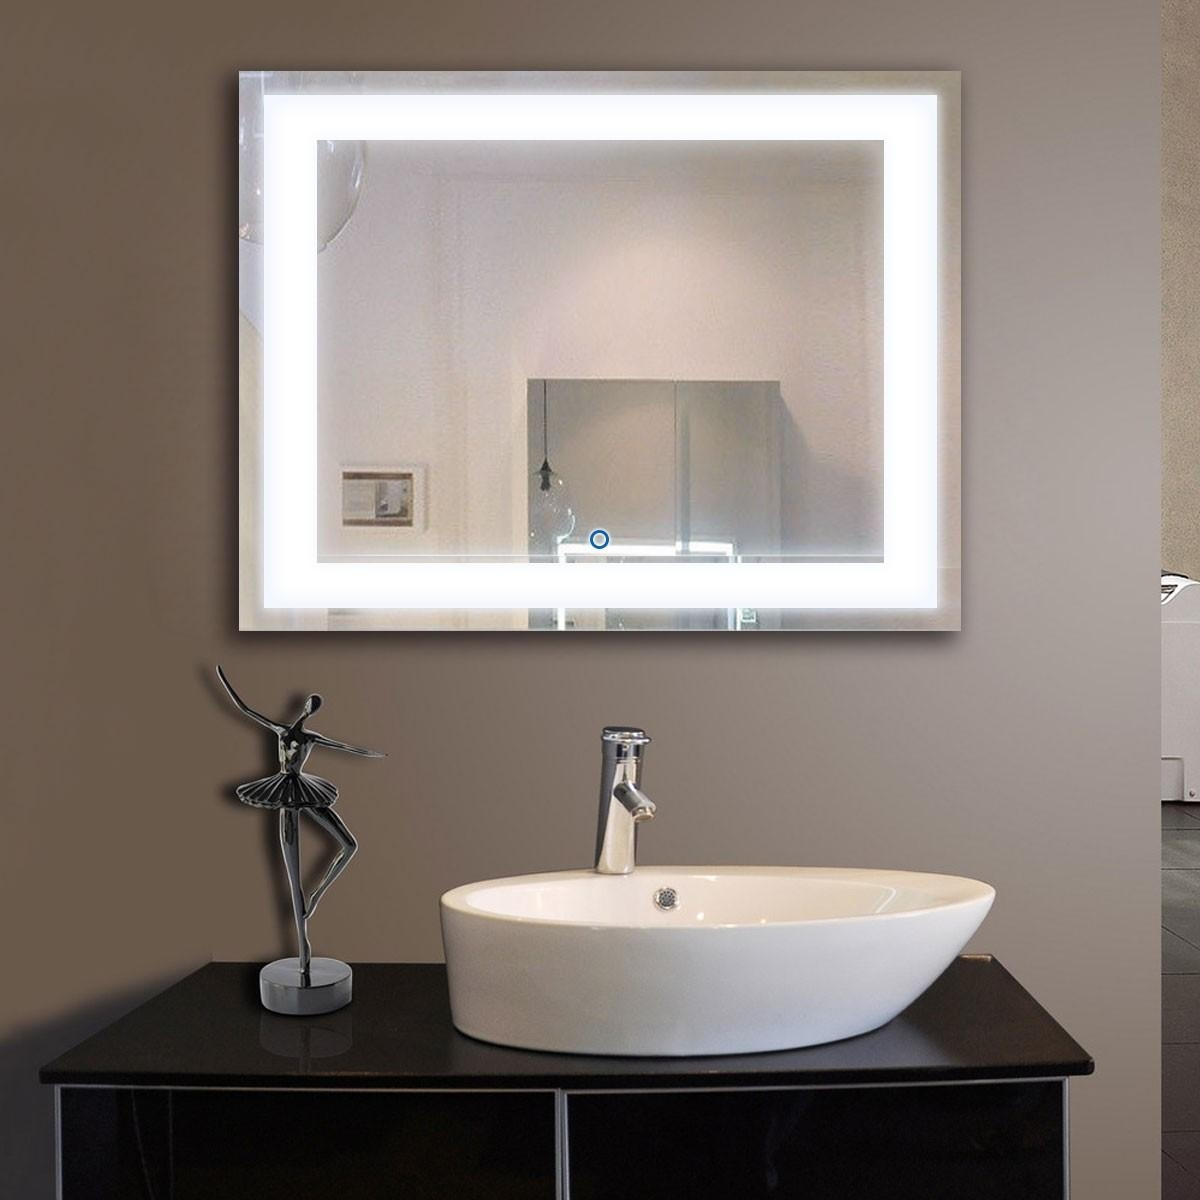 Bathroom Mirrors Brisbane 20 Photos Hotel Mirrors Mirror Ideas